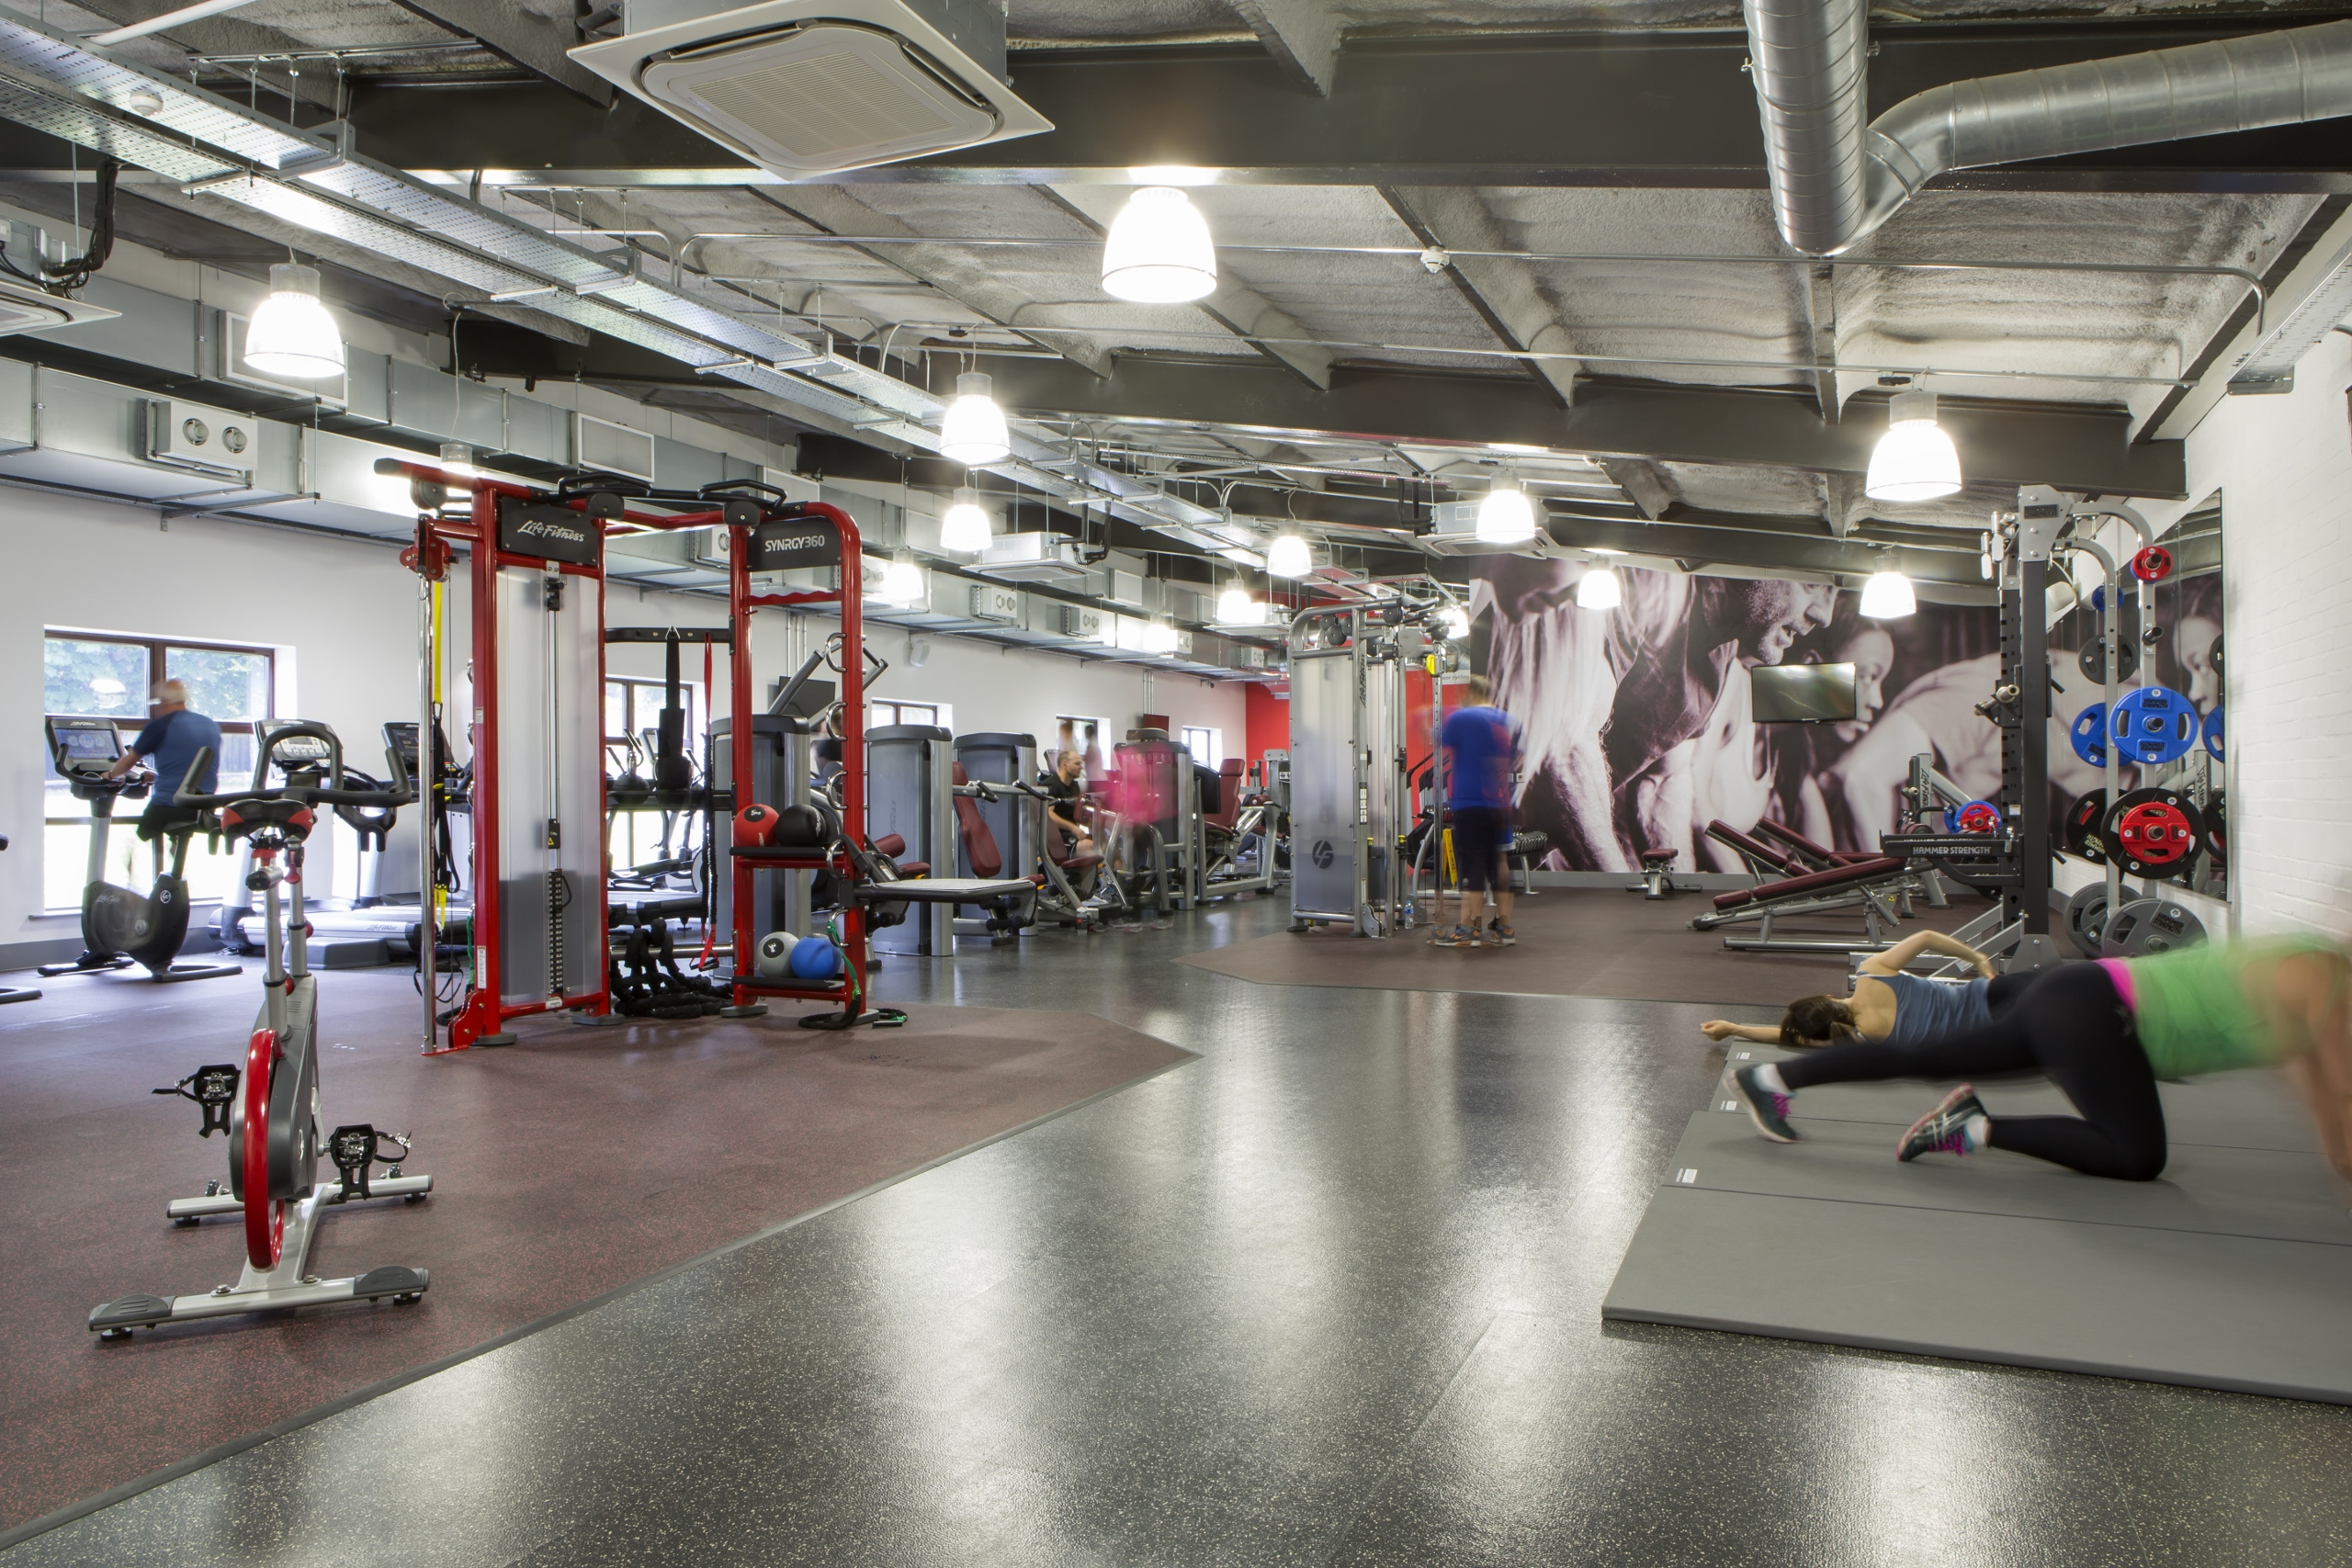 FUSION LIFESTYLE INVESTS MILLIONS IN SOMERSET LEISURE FACILITIES